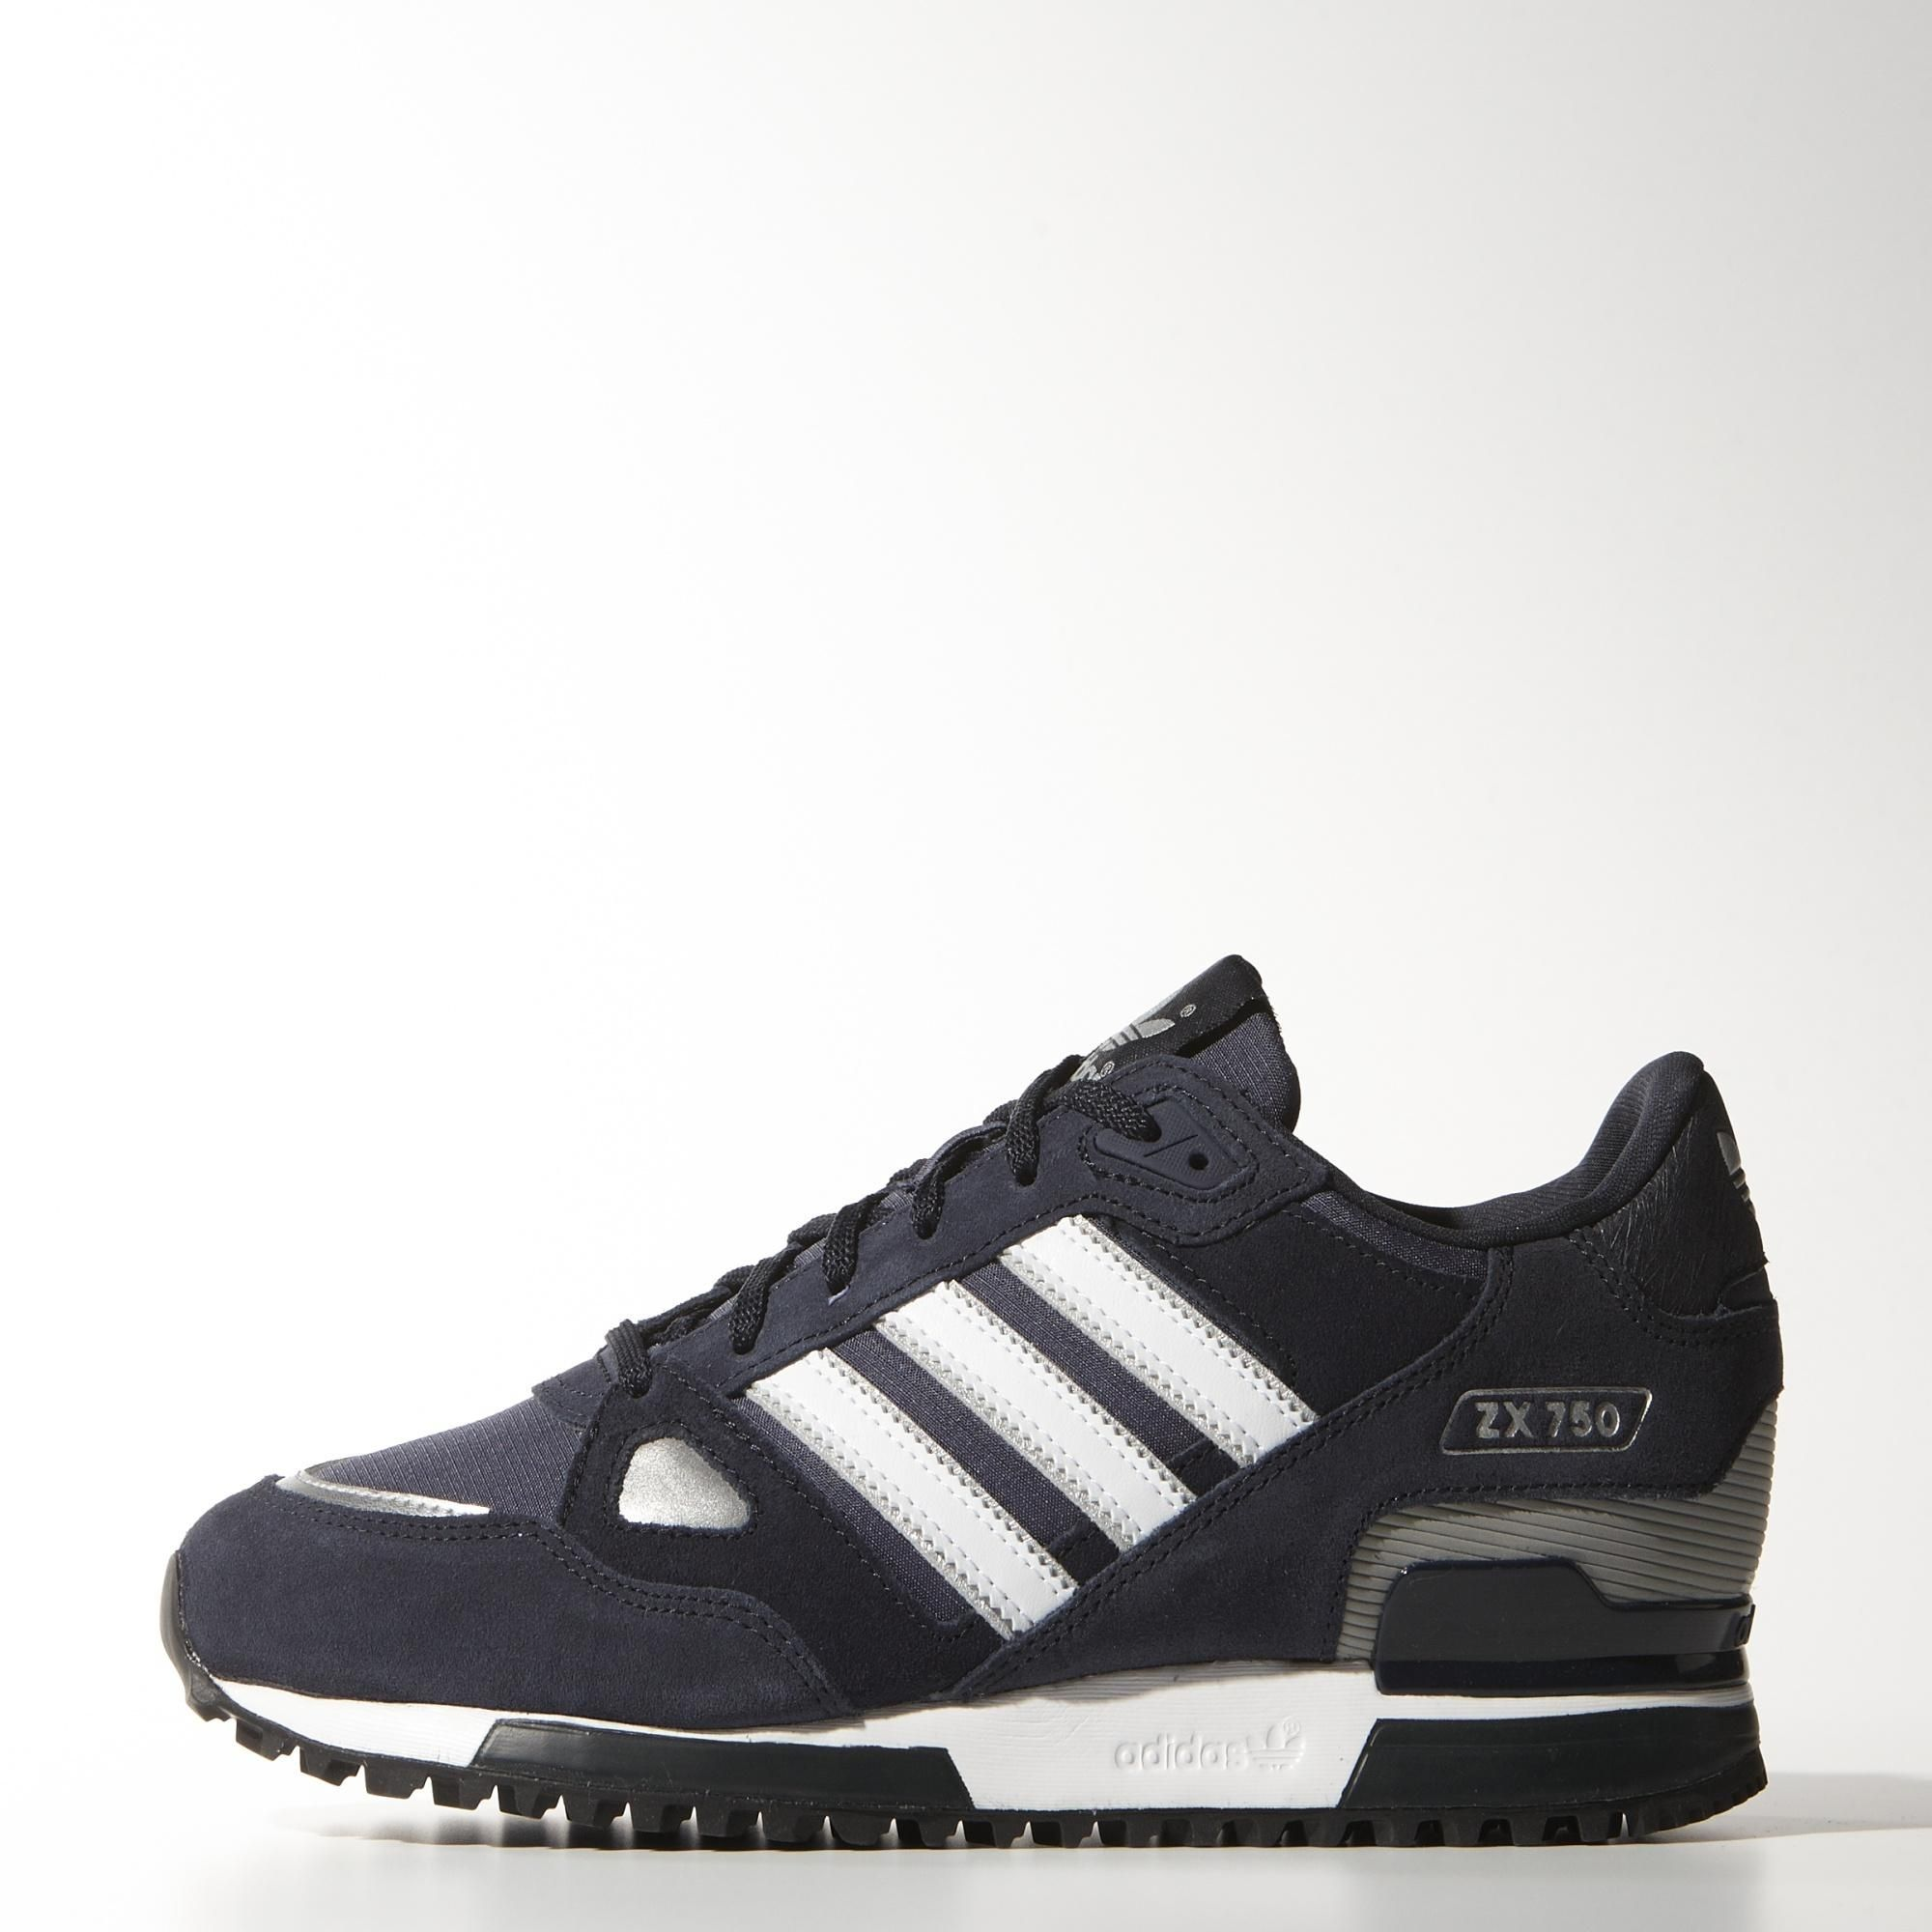 Chaussures ZX 750 adidas | adidas France | Chaussure sport